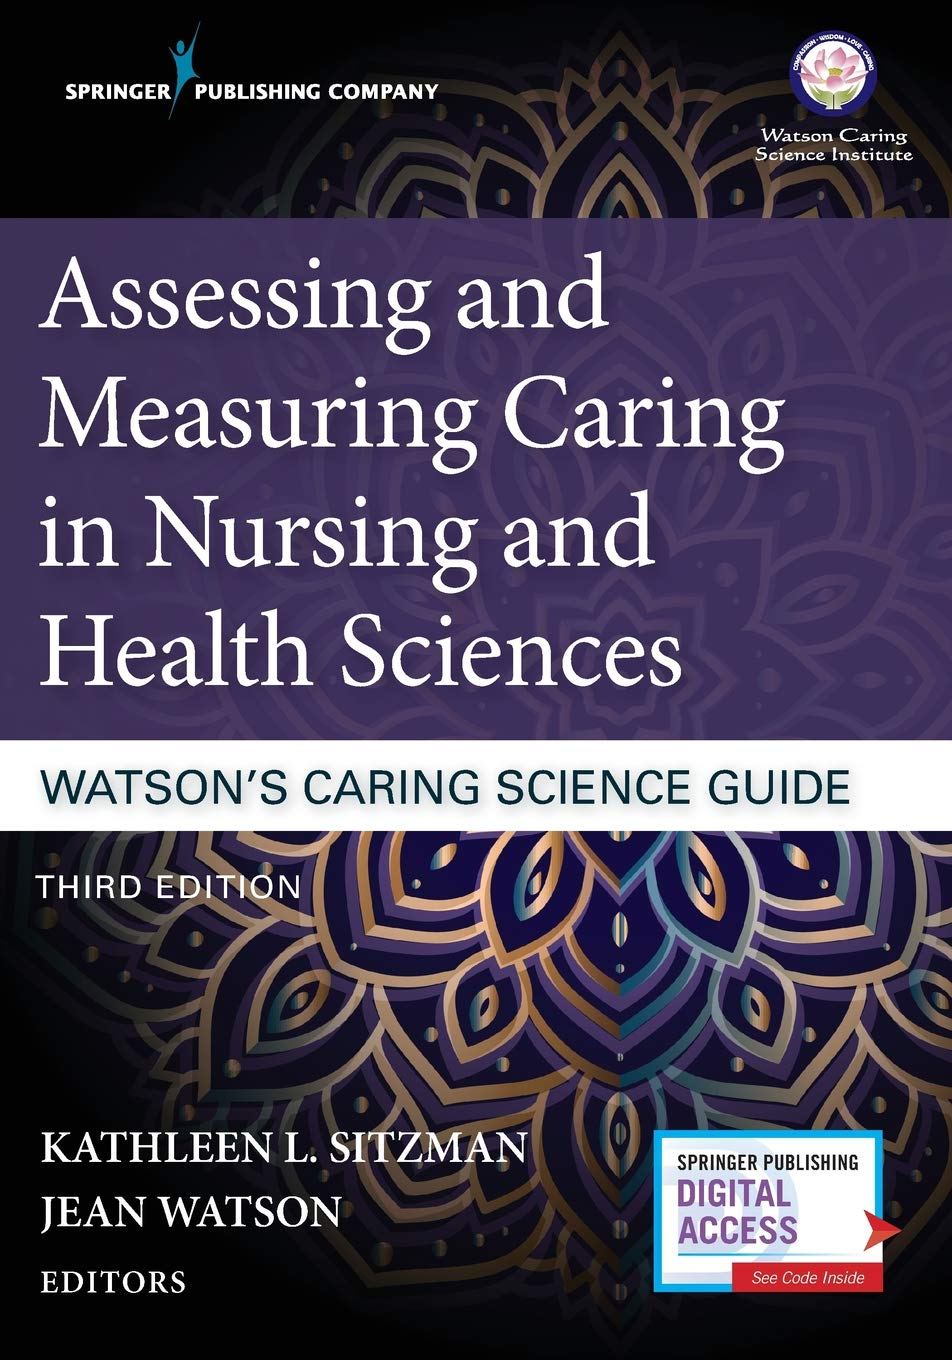 Watson Caring Science cover